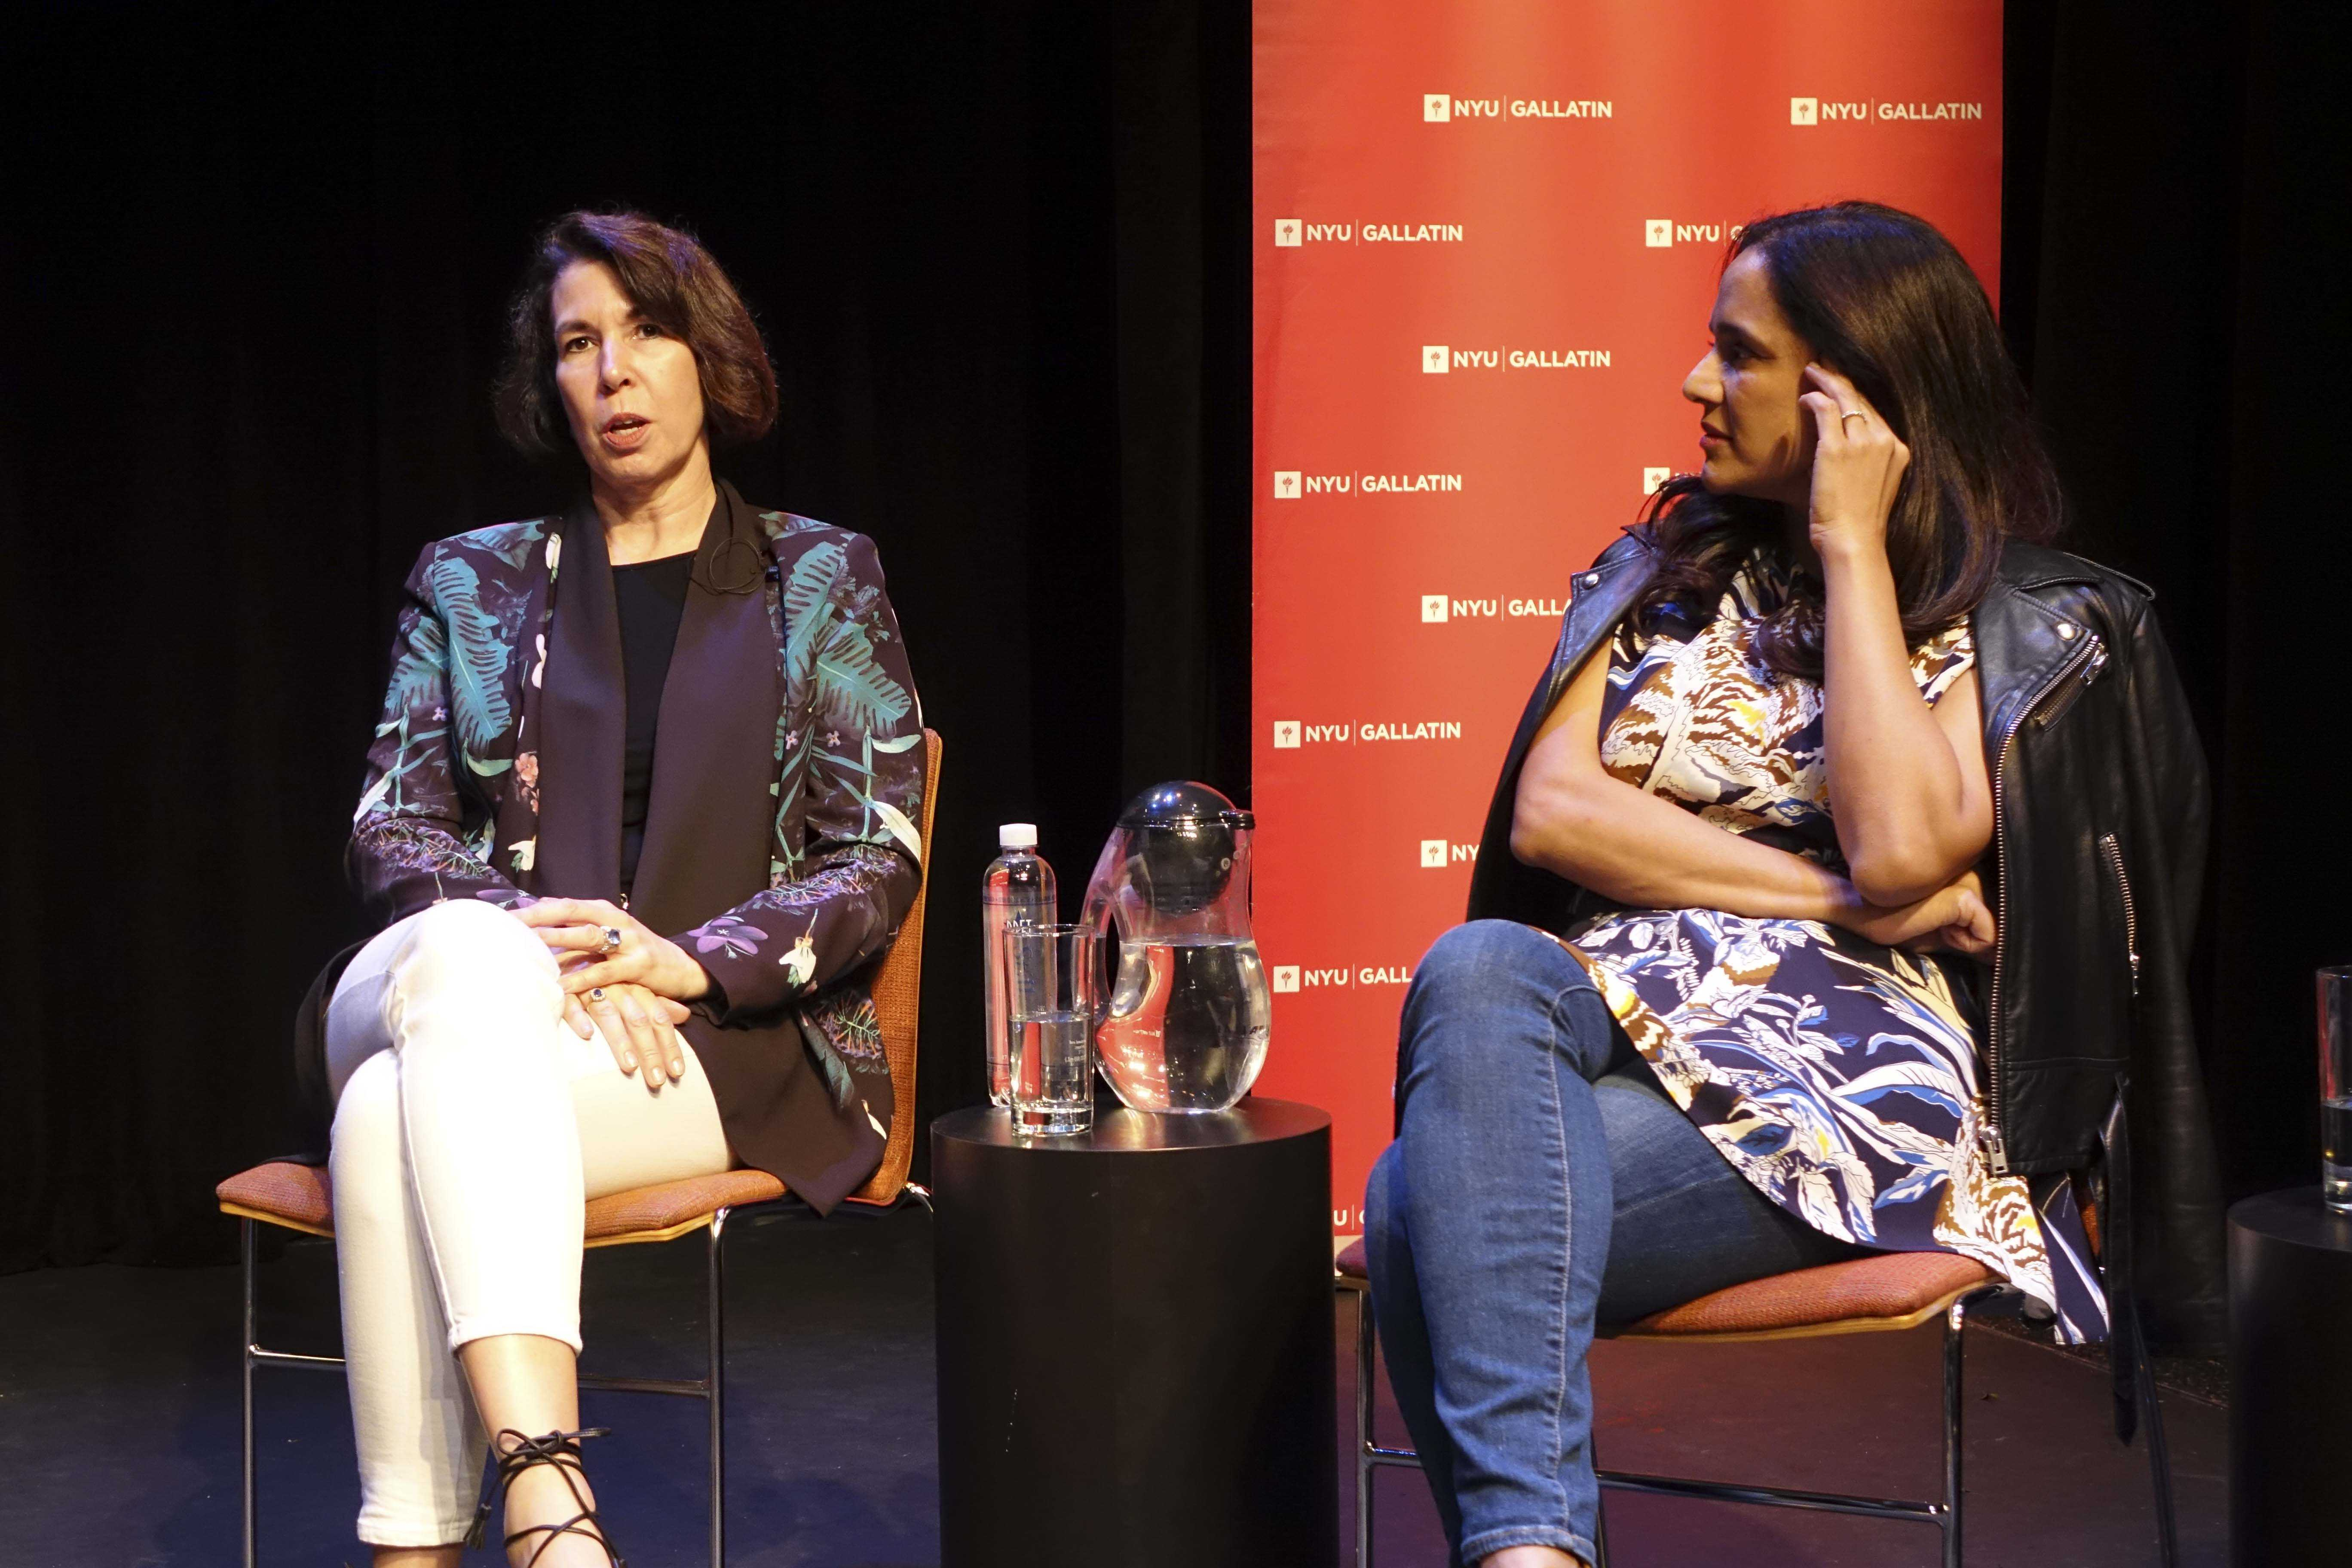 Panelists Ruth Hartman, the CMO of Le Tote, and Jyothi Rao, President of Intermix, shared their advice and experience, discussing the future of the industry.